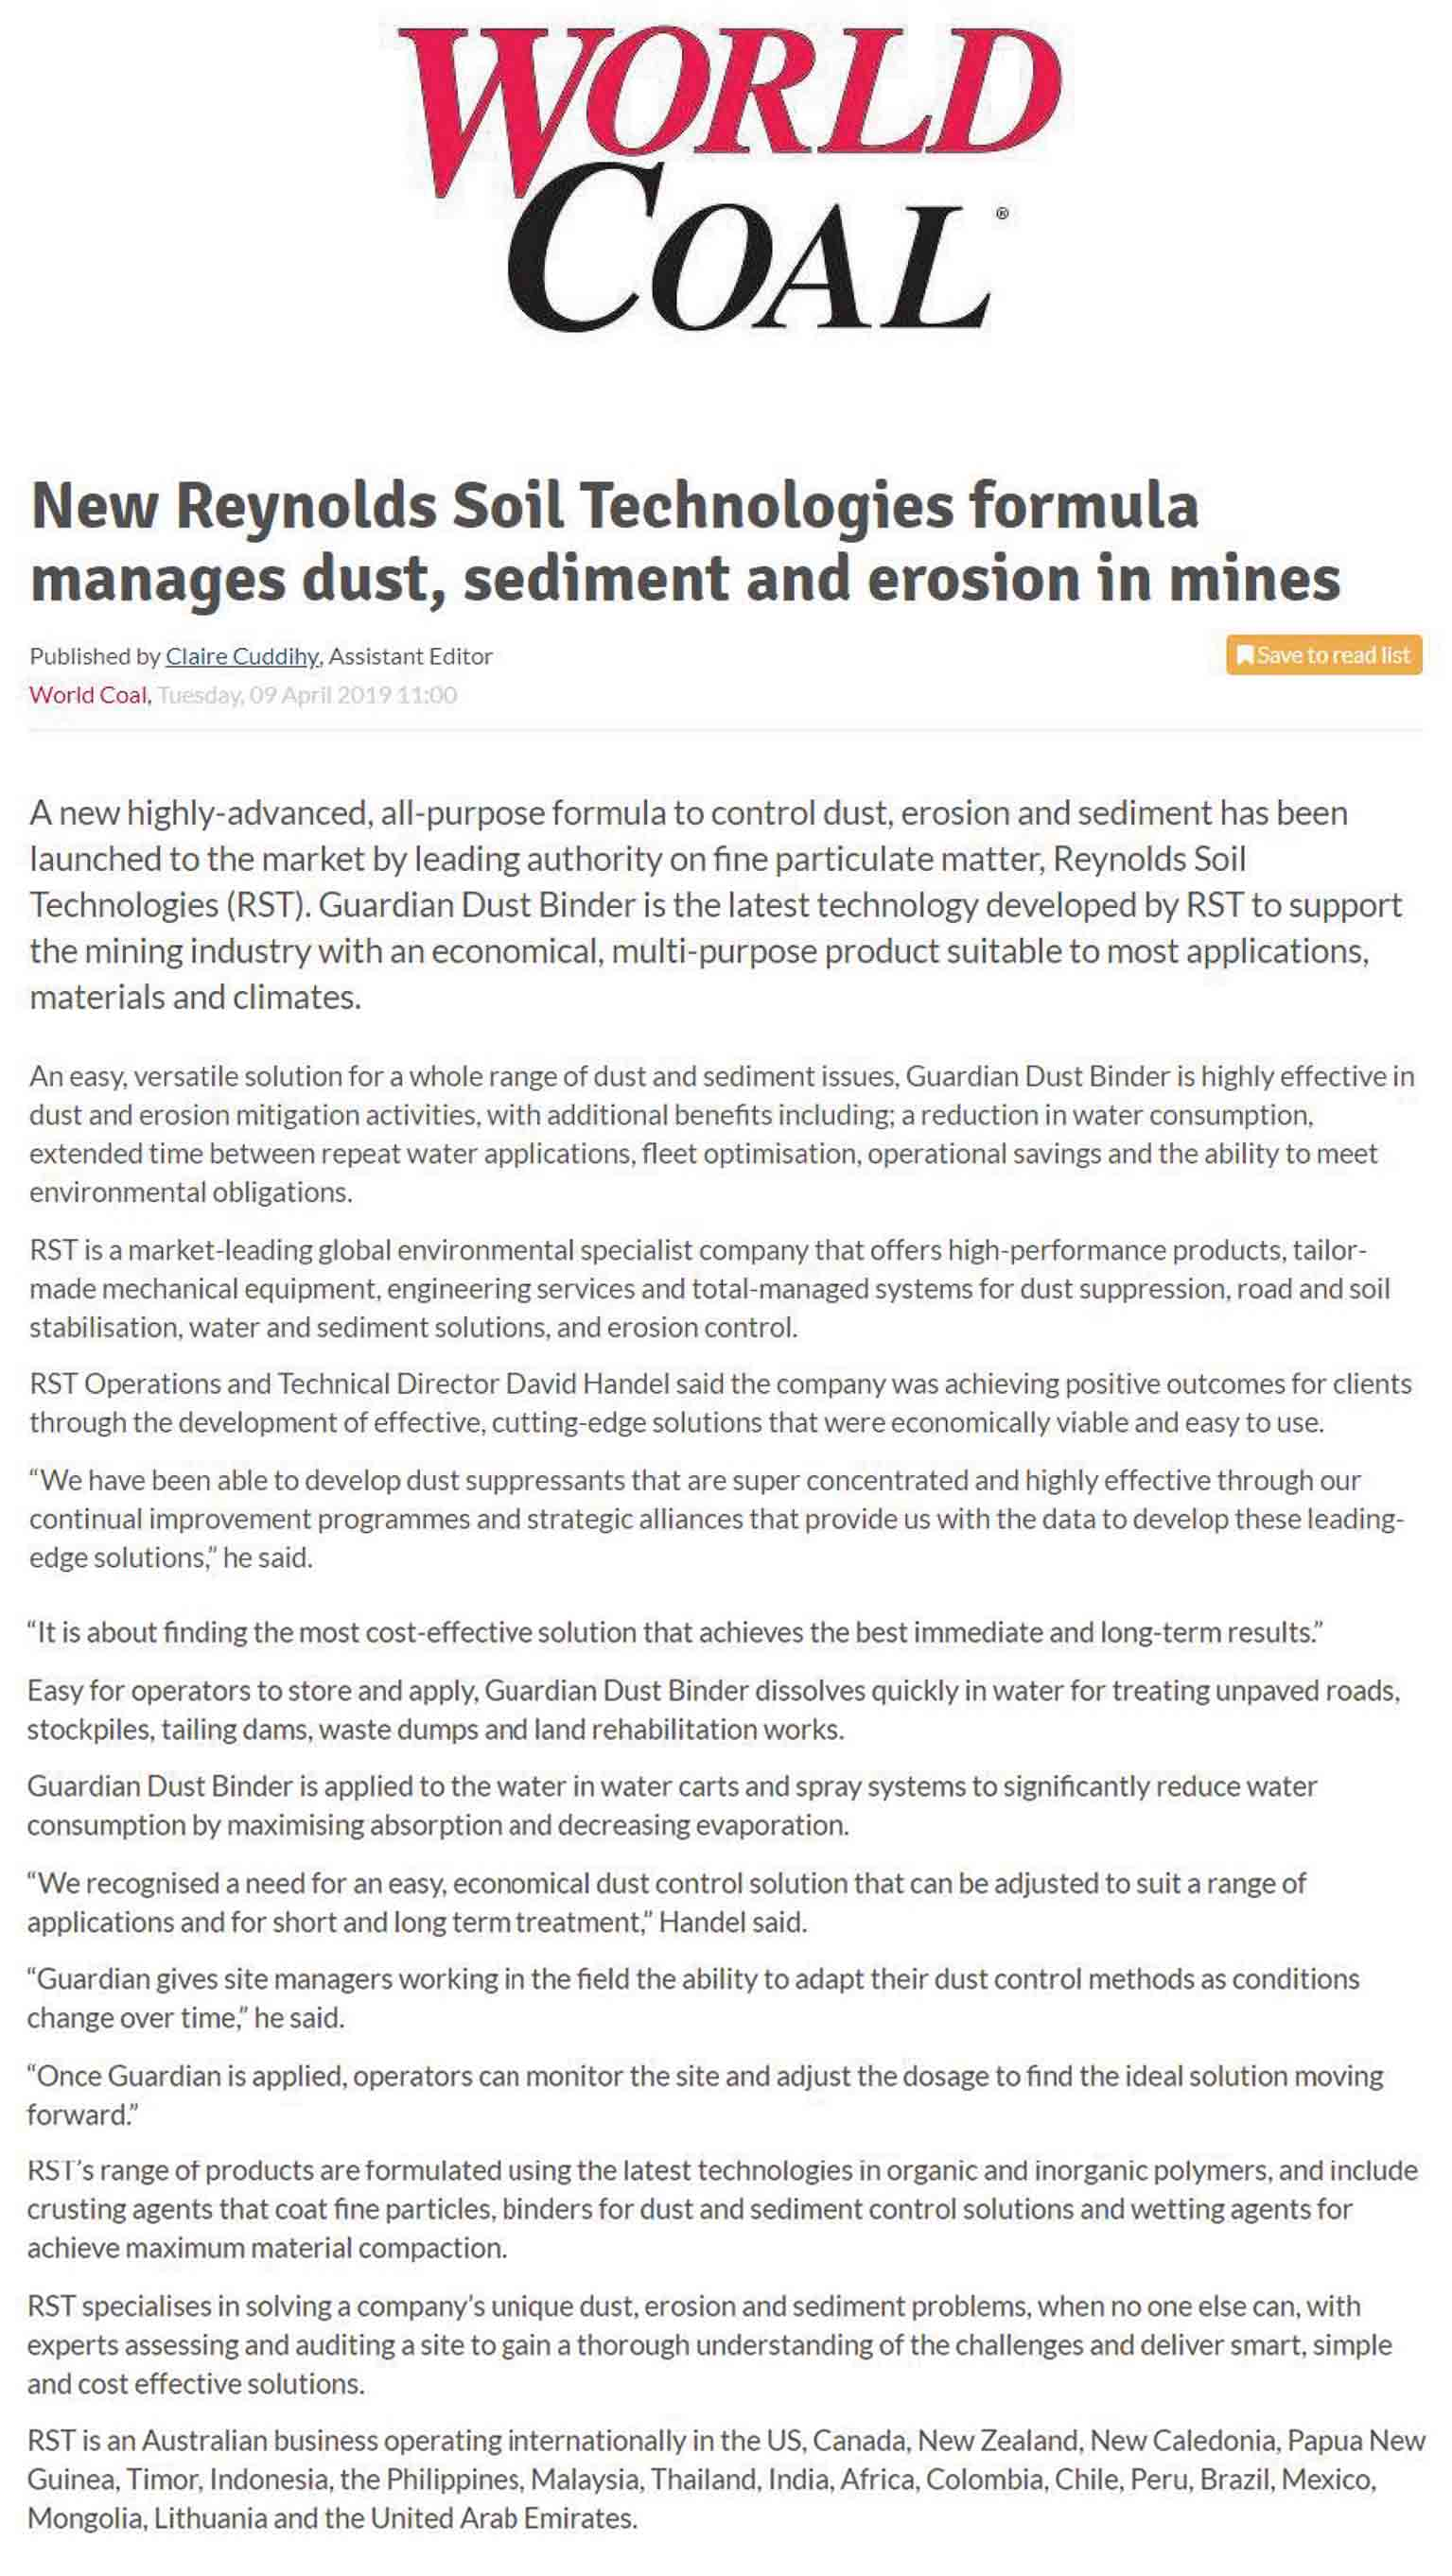 New Reynolds Soil Technologies Formula Manages Dust, Sediment and Erosion in Mines